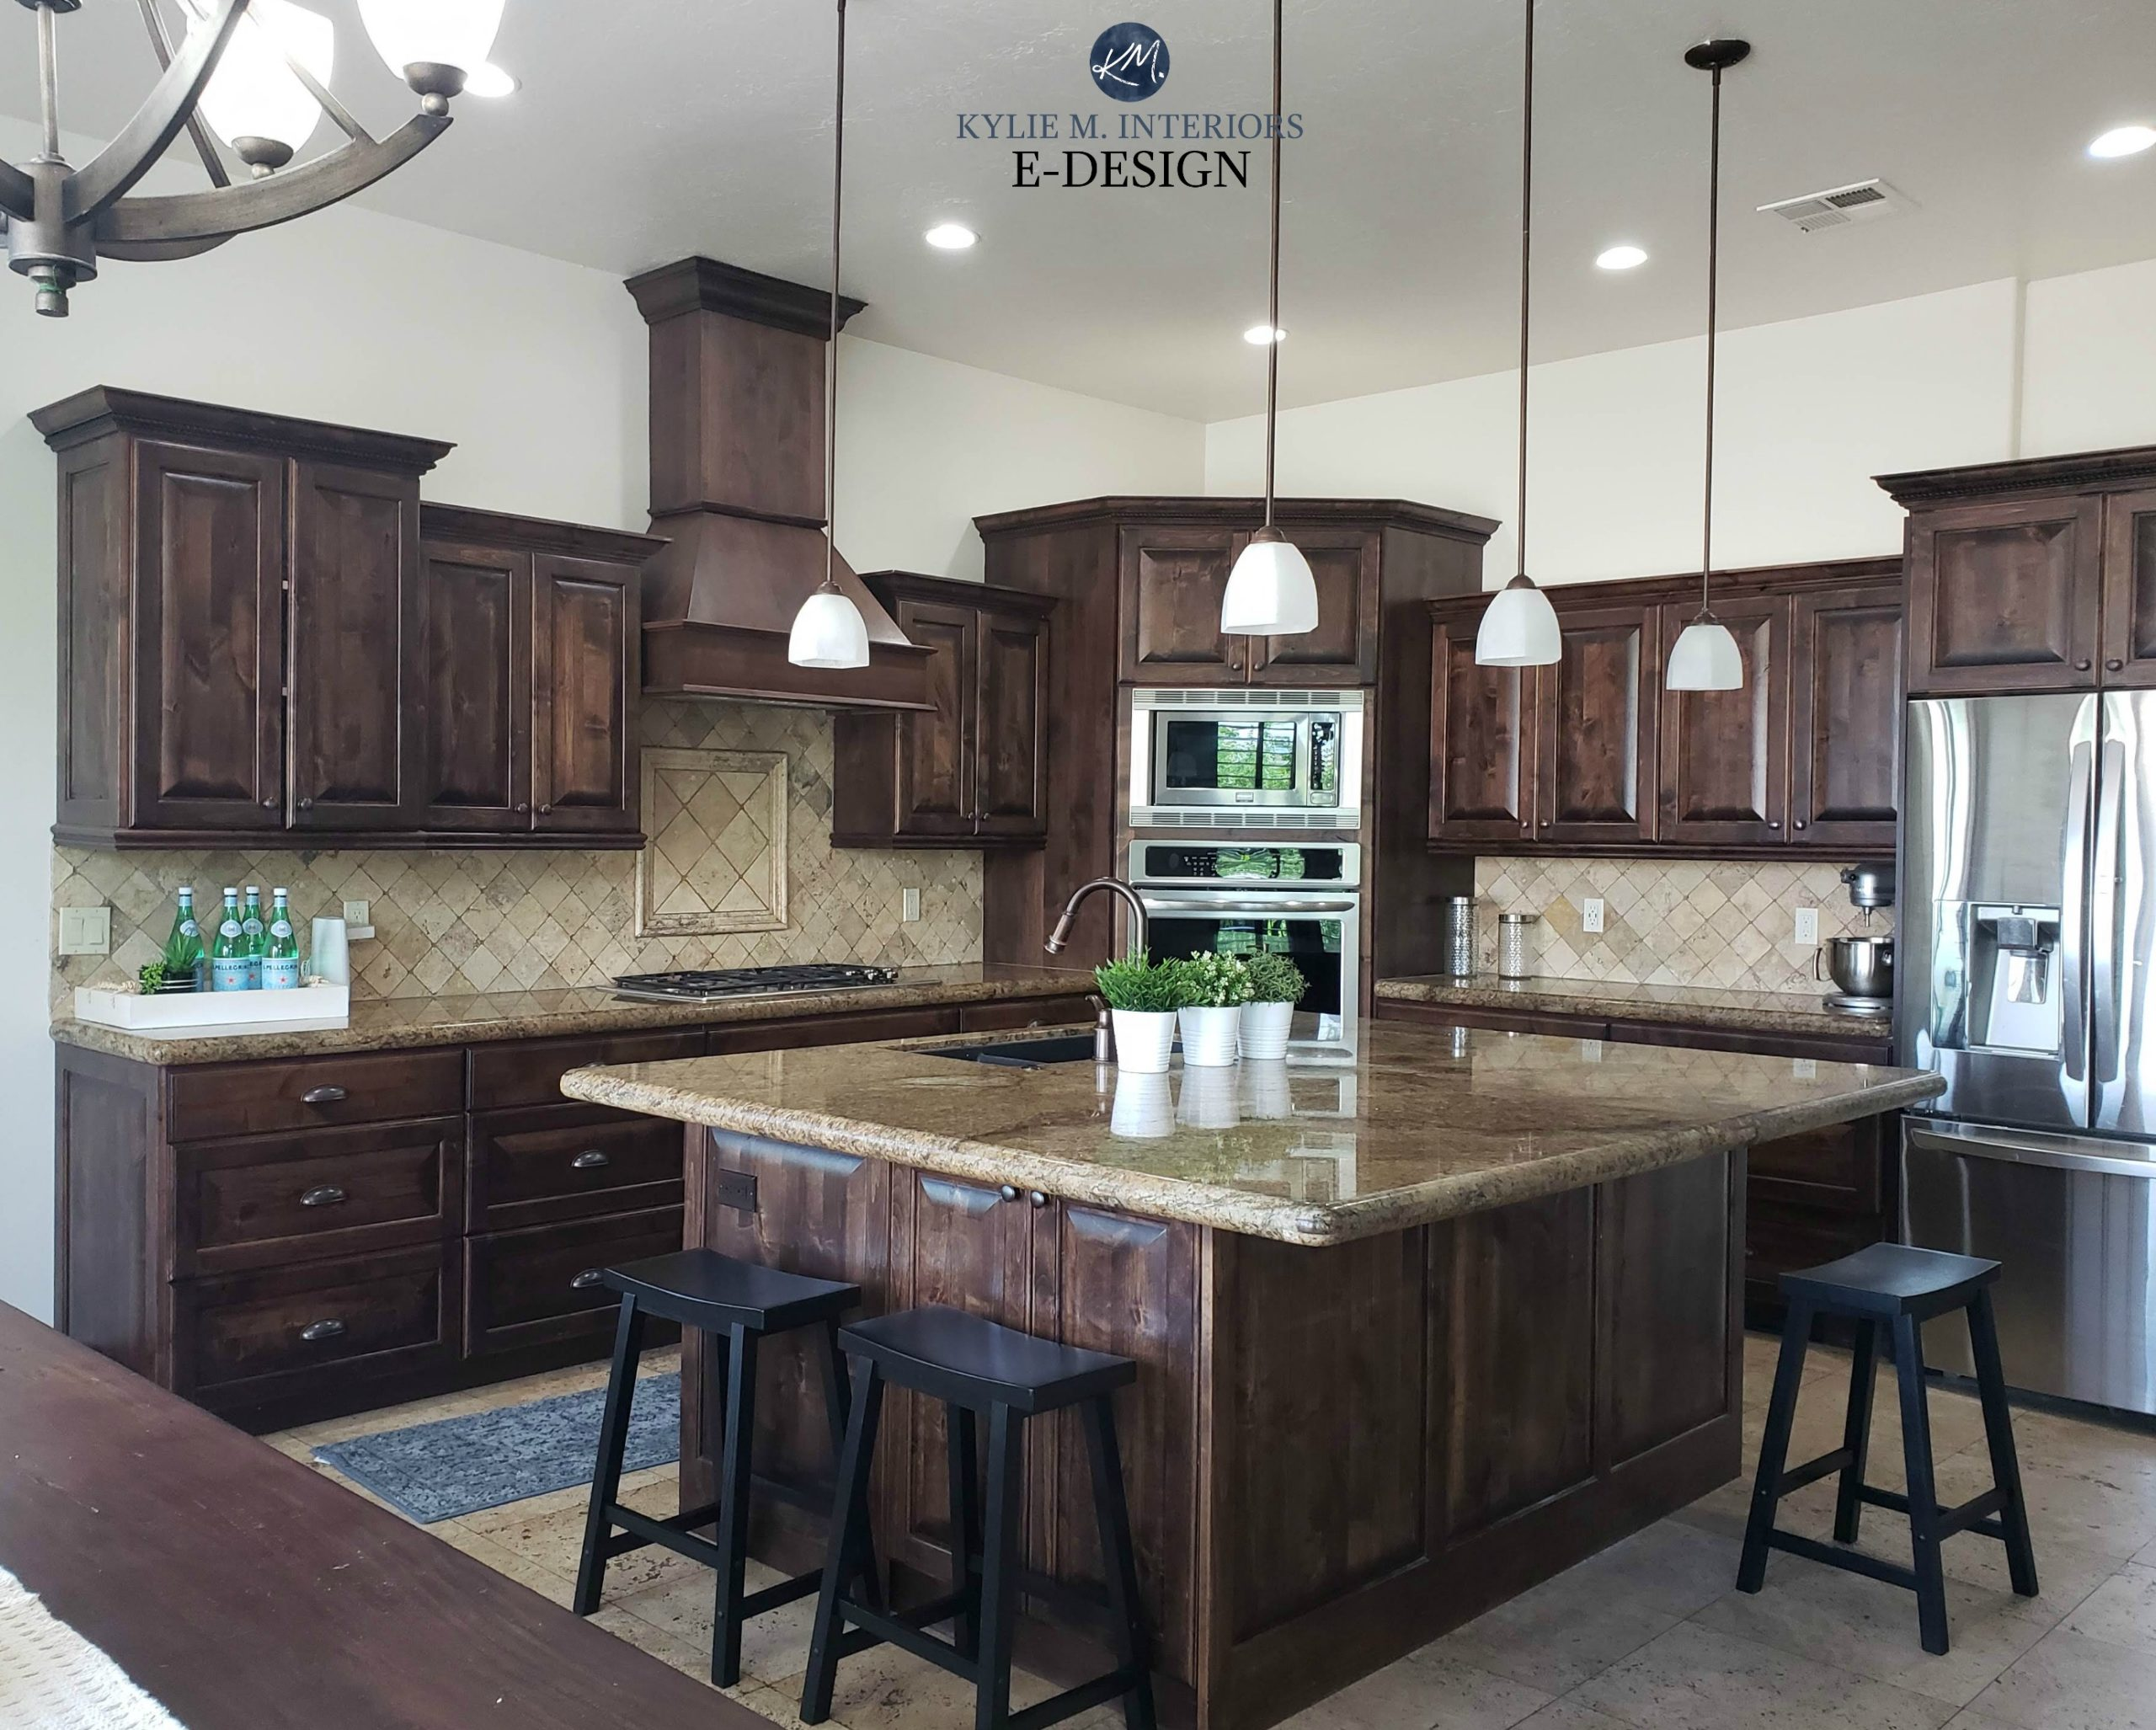 Dark wood kitchen cabinets and trim with travertine tile ...